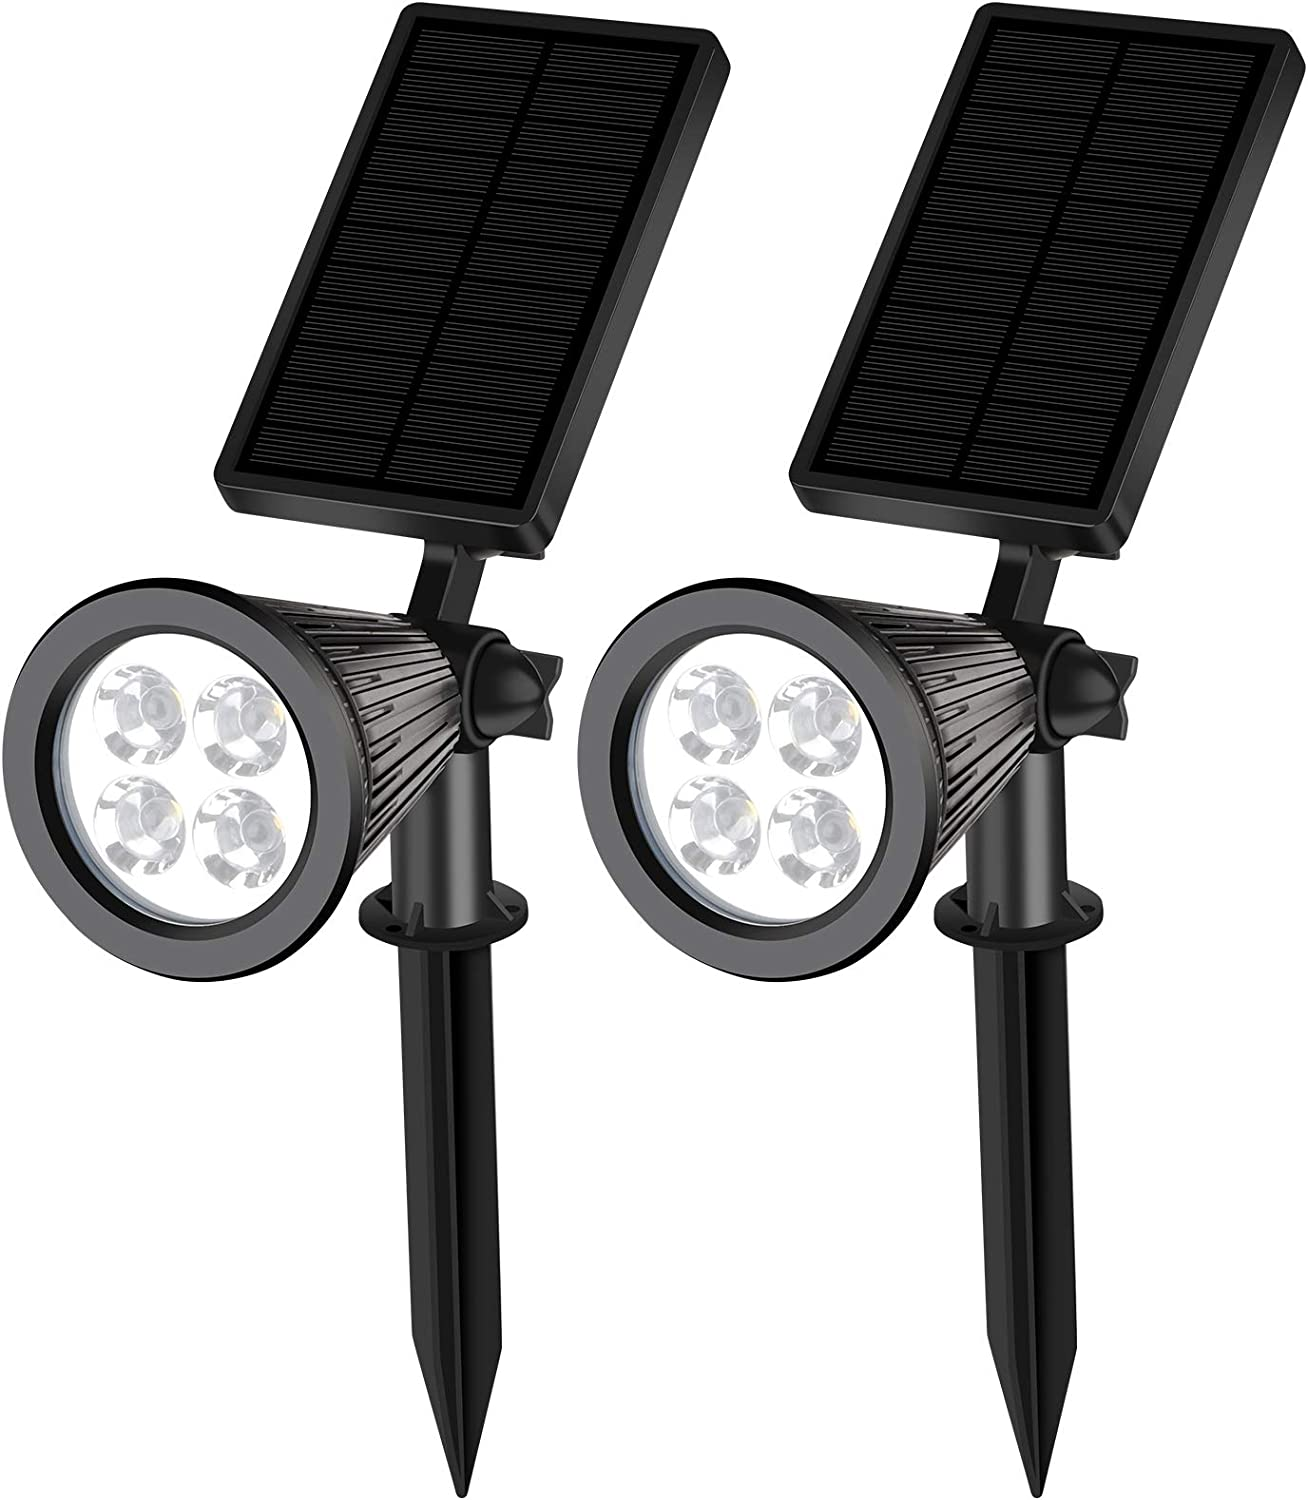 GOLDEN AUTUMN Solar spot Lights Outdoor, Two-in-one Wall lamp Decorative Lighting, The use of New Materials has greatly Improved The Service Life and Lighting time,2 Pack(Warm Light)